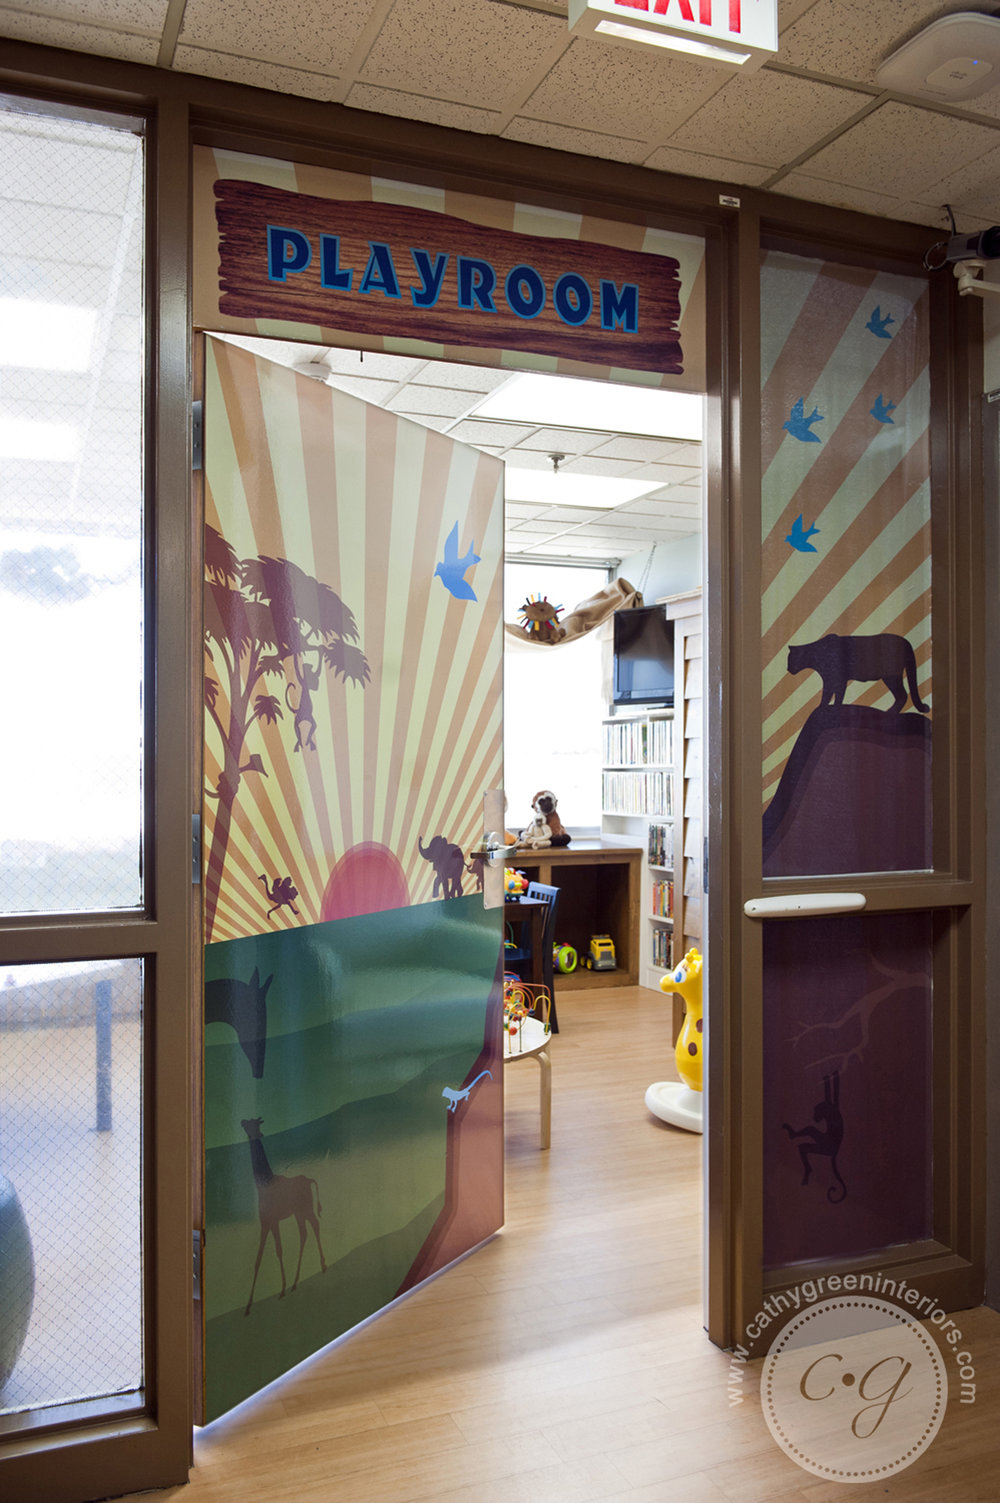 playroom entrance.jpg